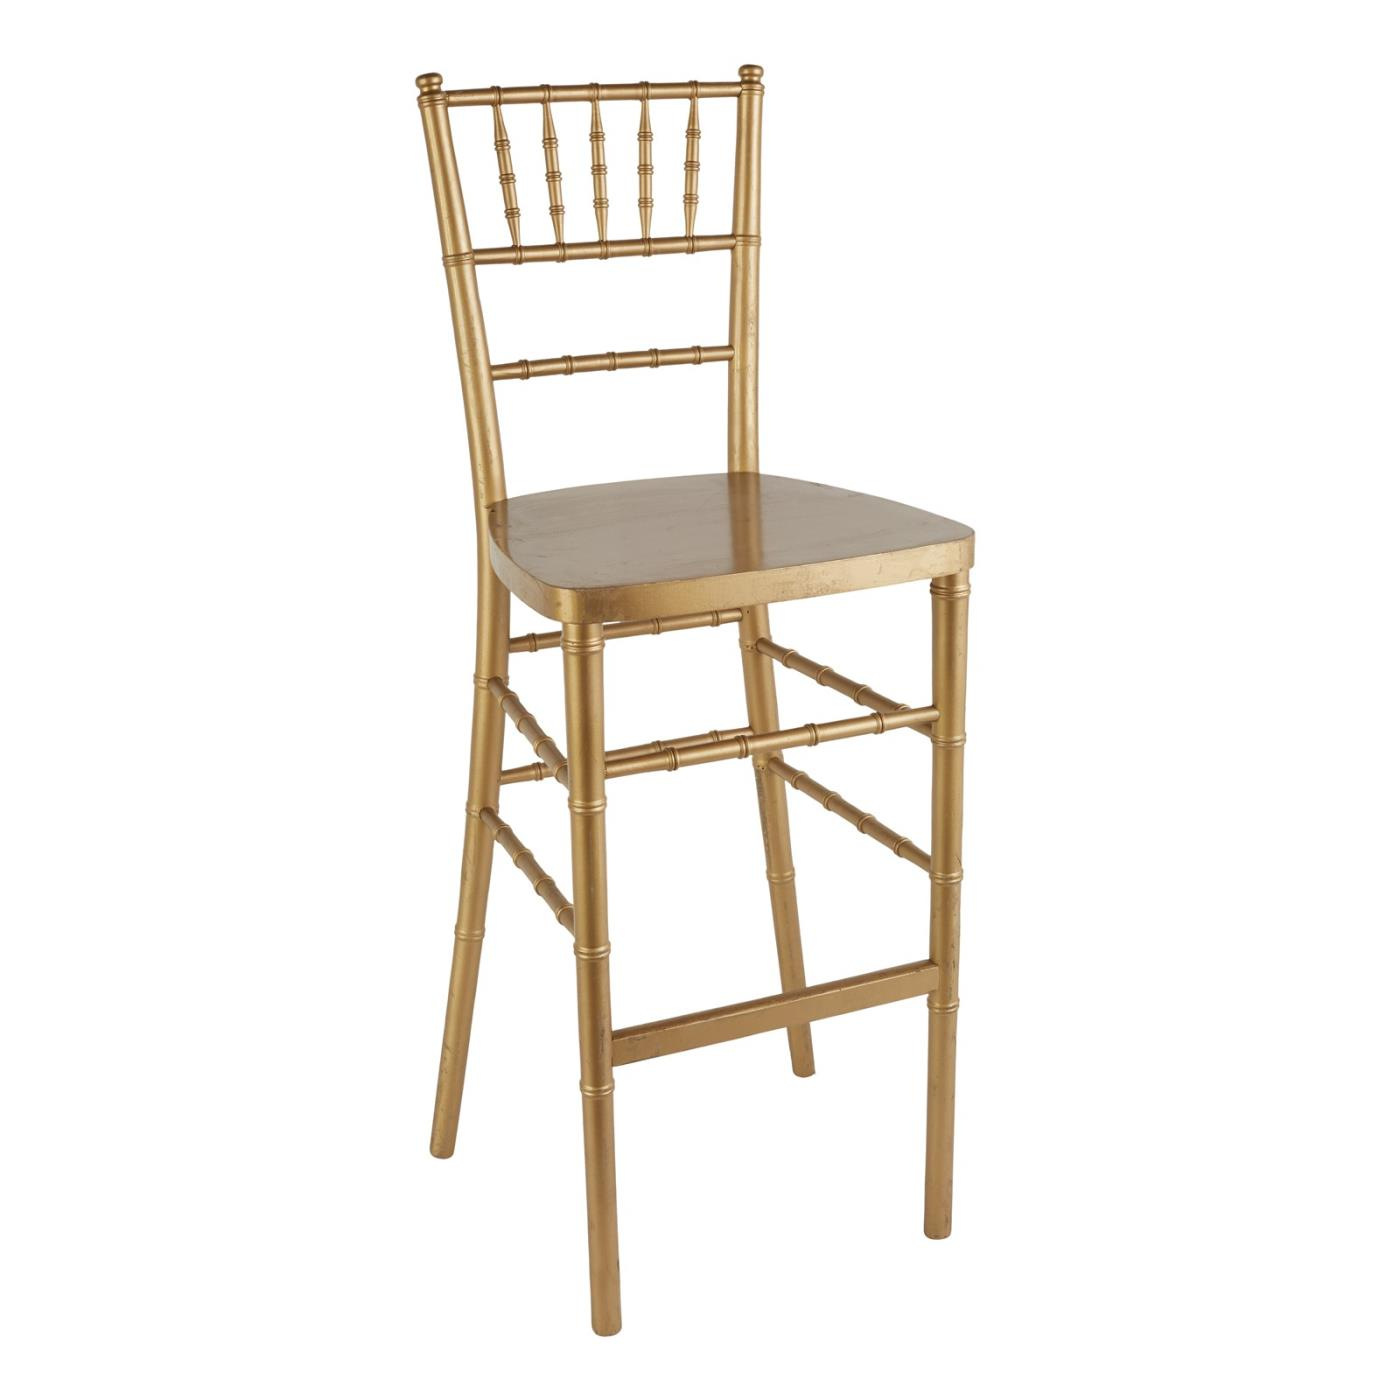 Reception Stool - Gold